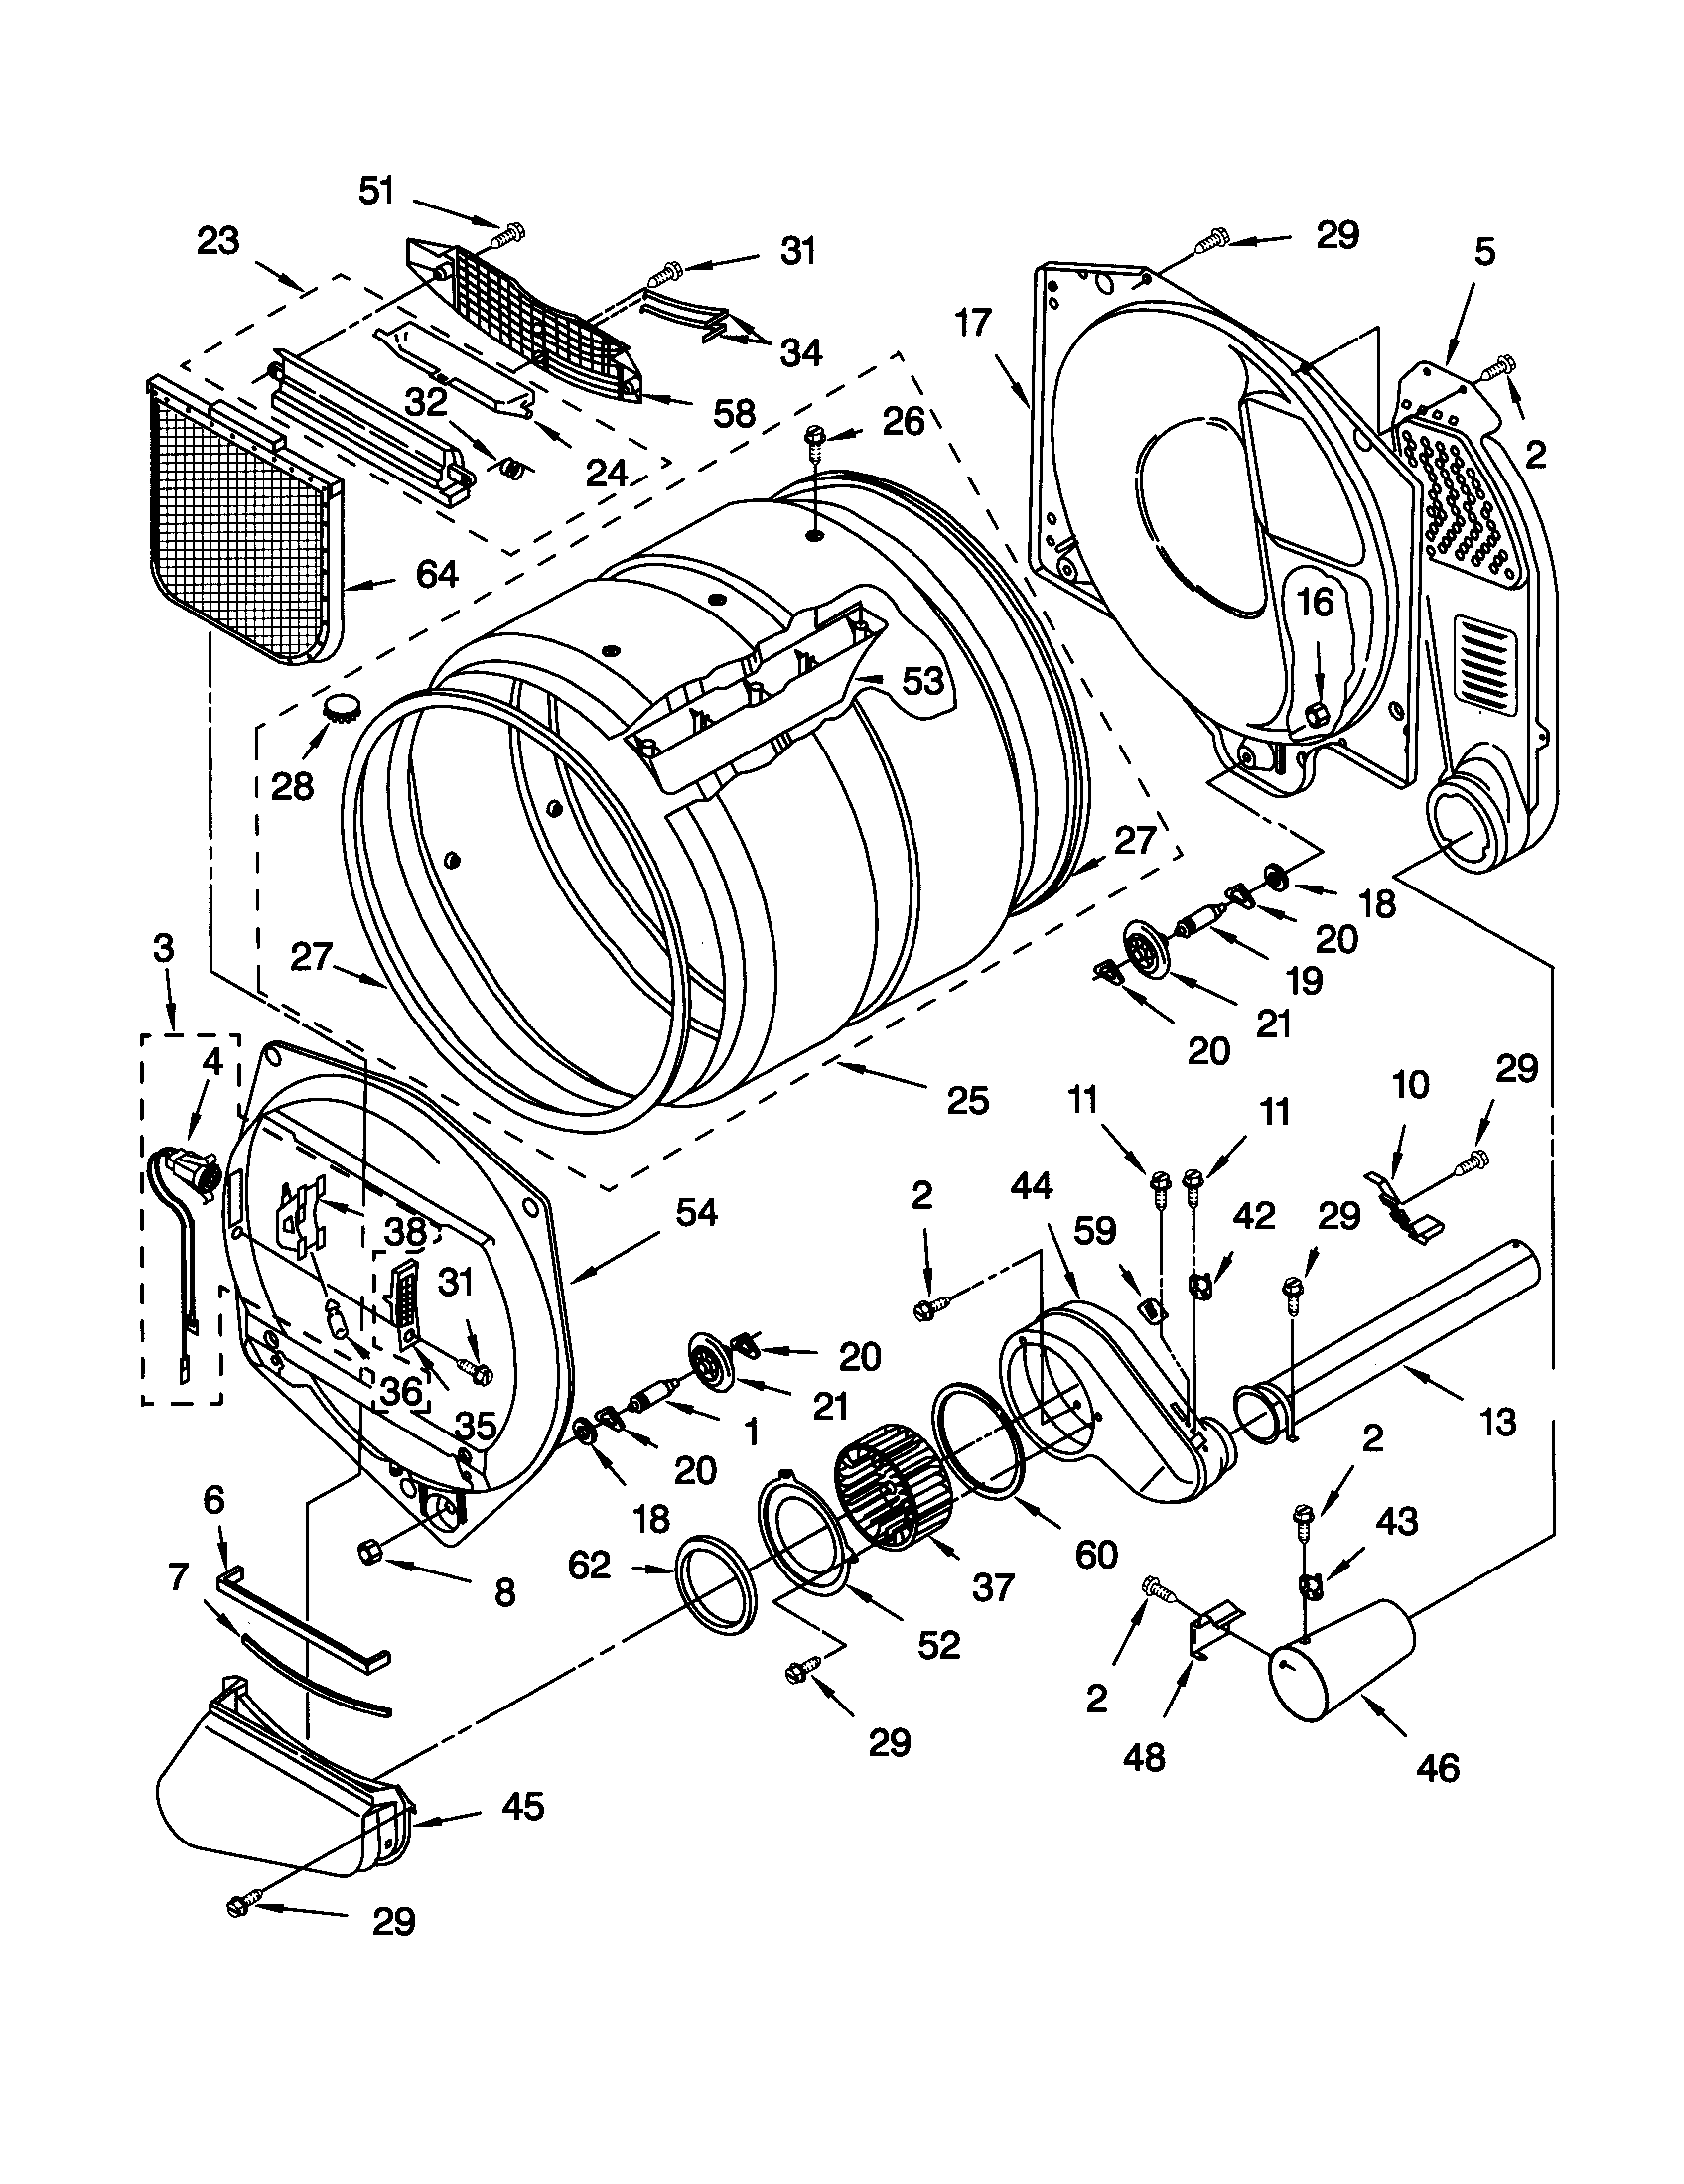 hight resolution of kenmore elite he4 dryer wiring diagram trusted wiring diagram kenmore 110 washer diagram kenmore dryer model